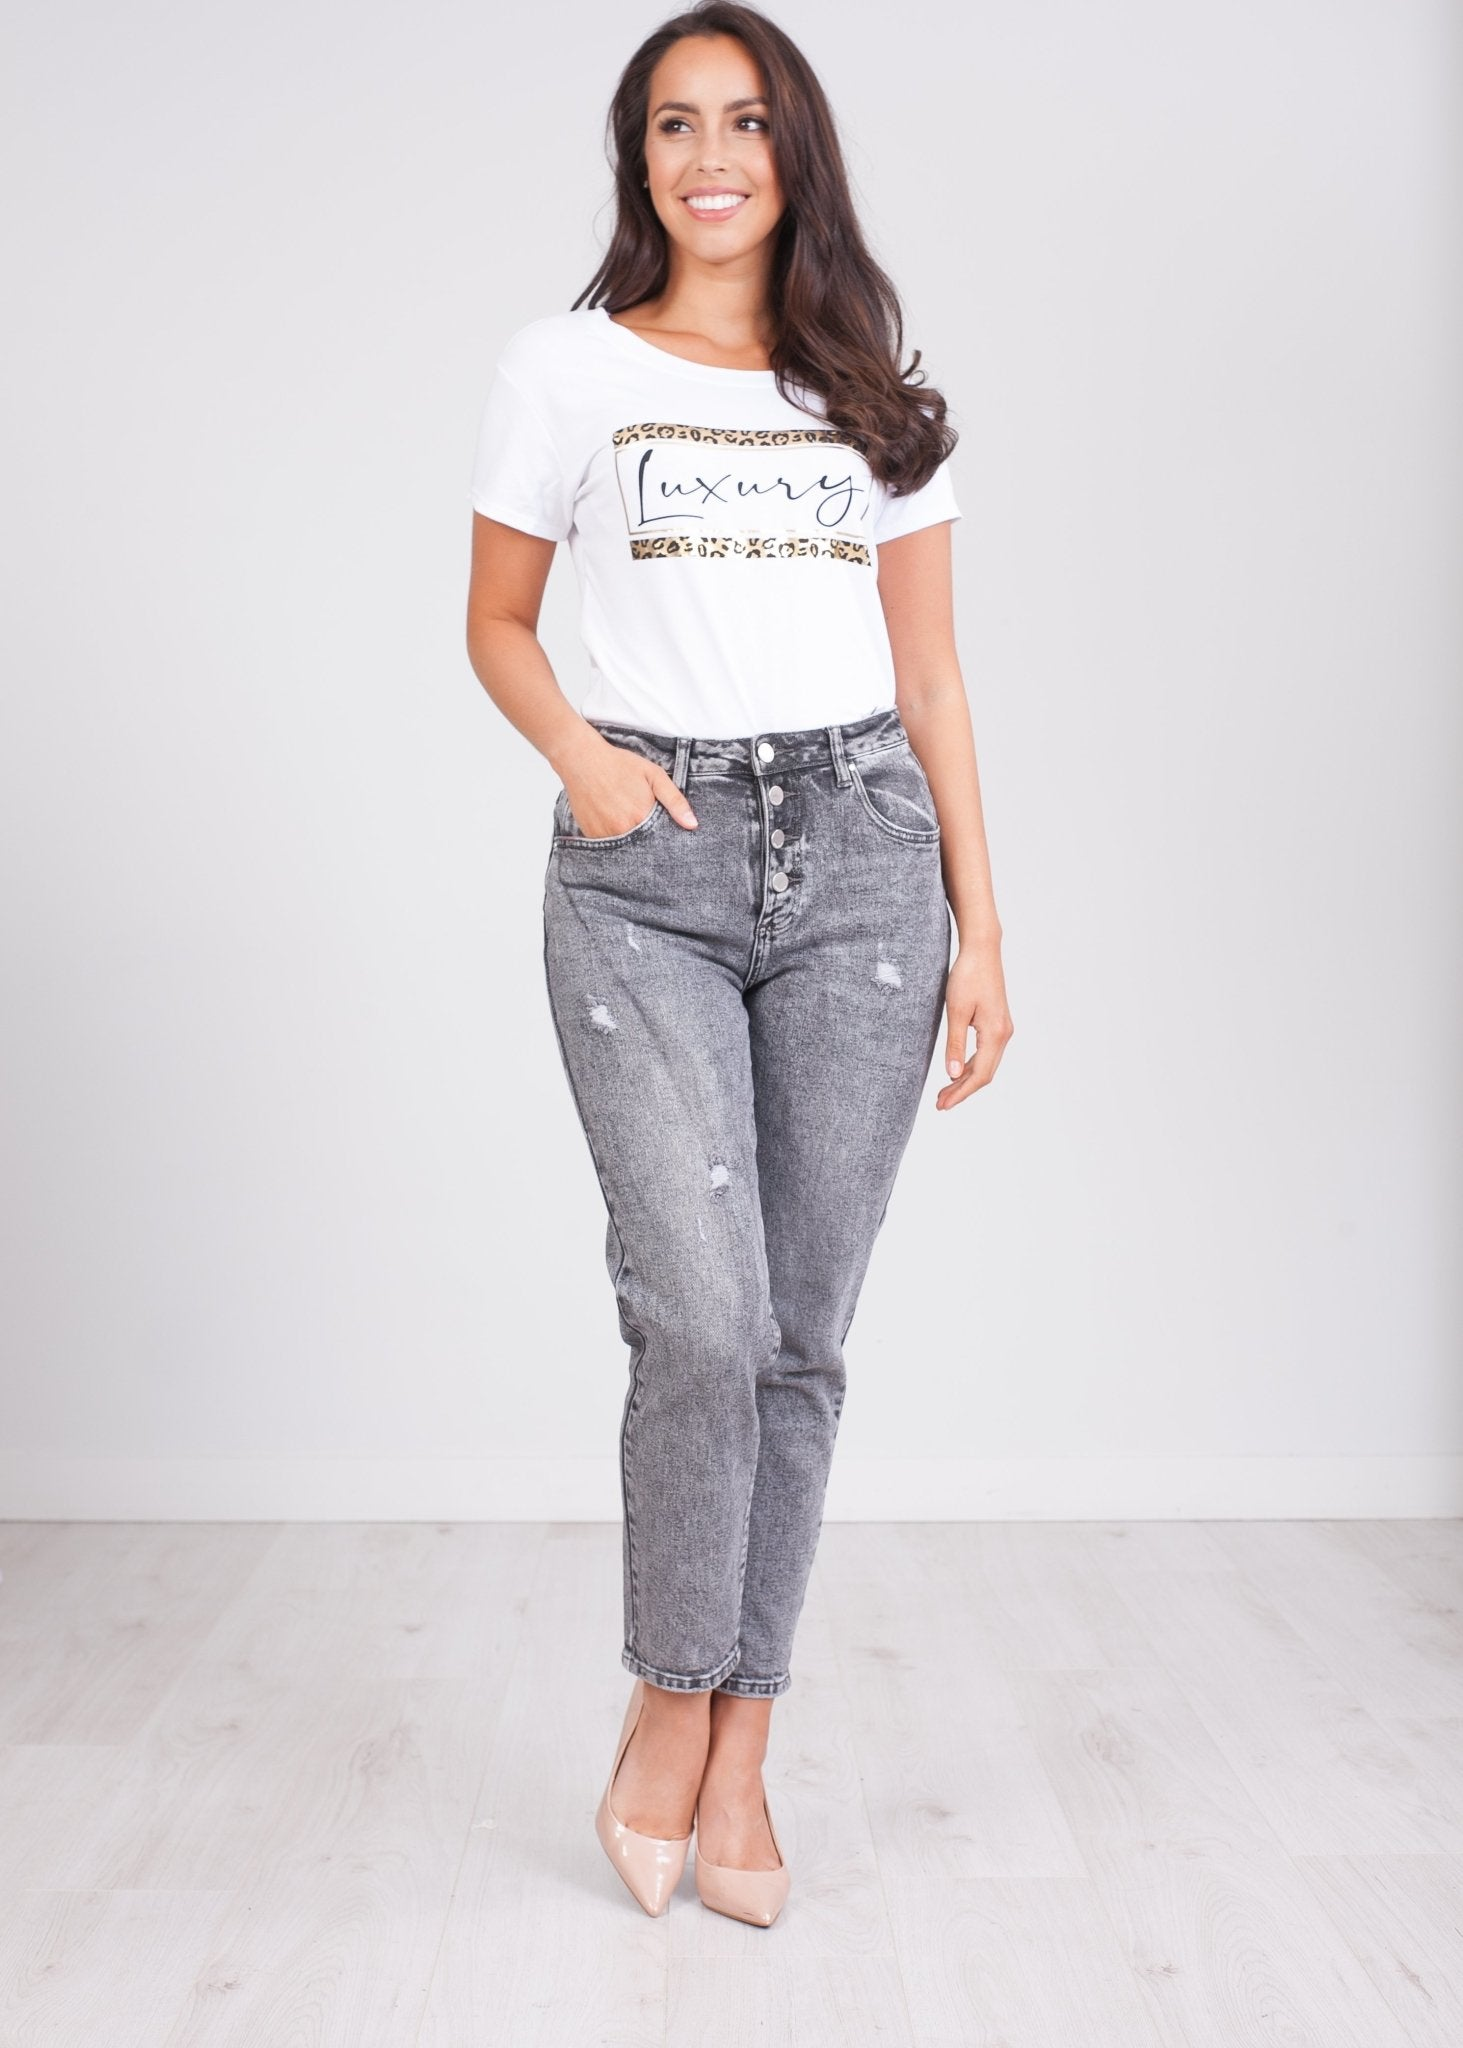 'Michelle' Black Wash Jeans - The Walk in Wardrobe